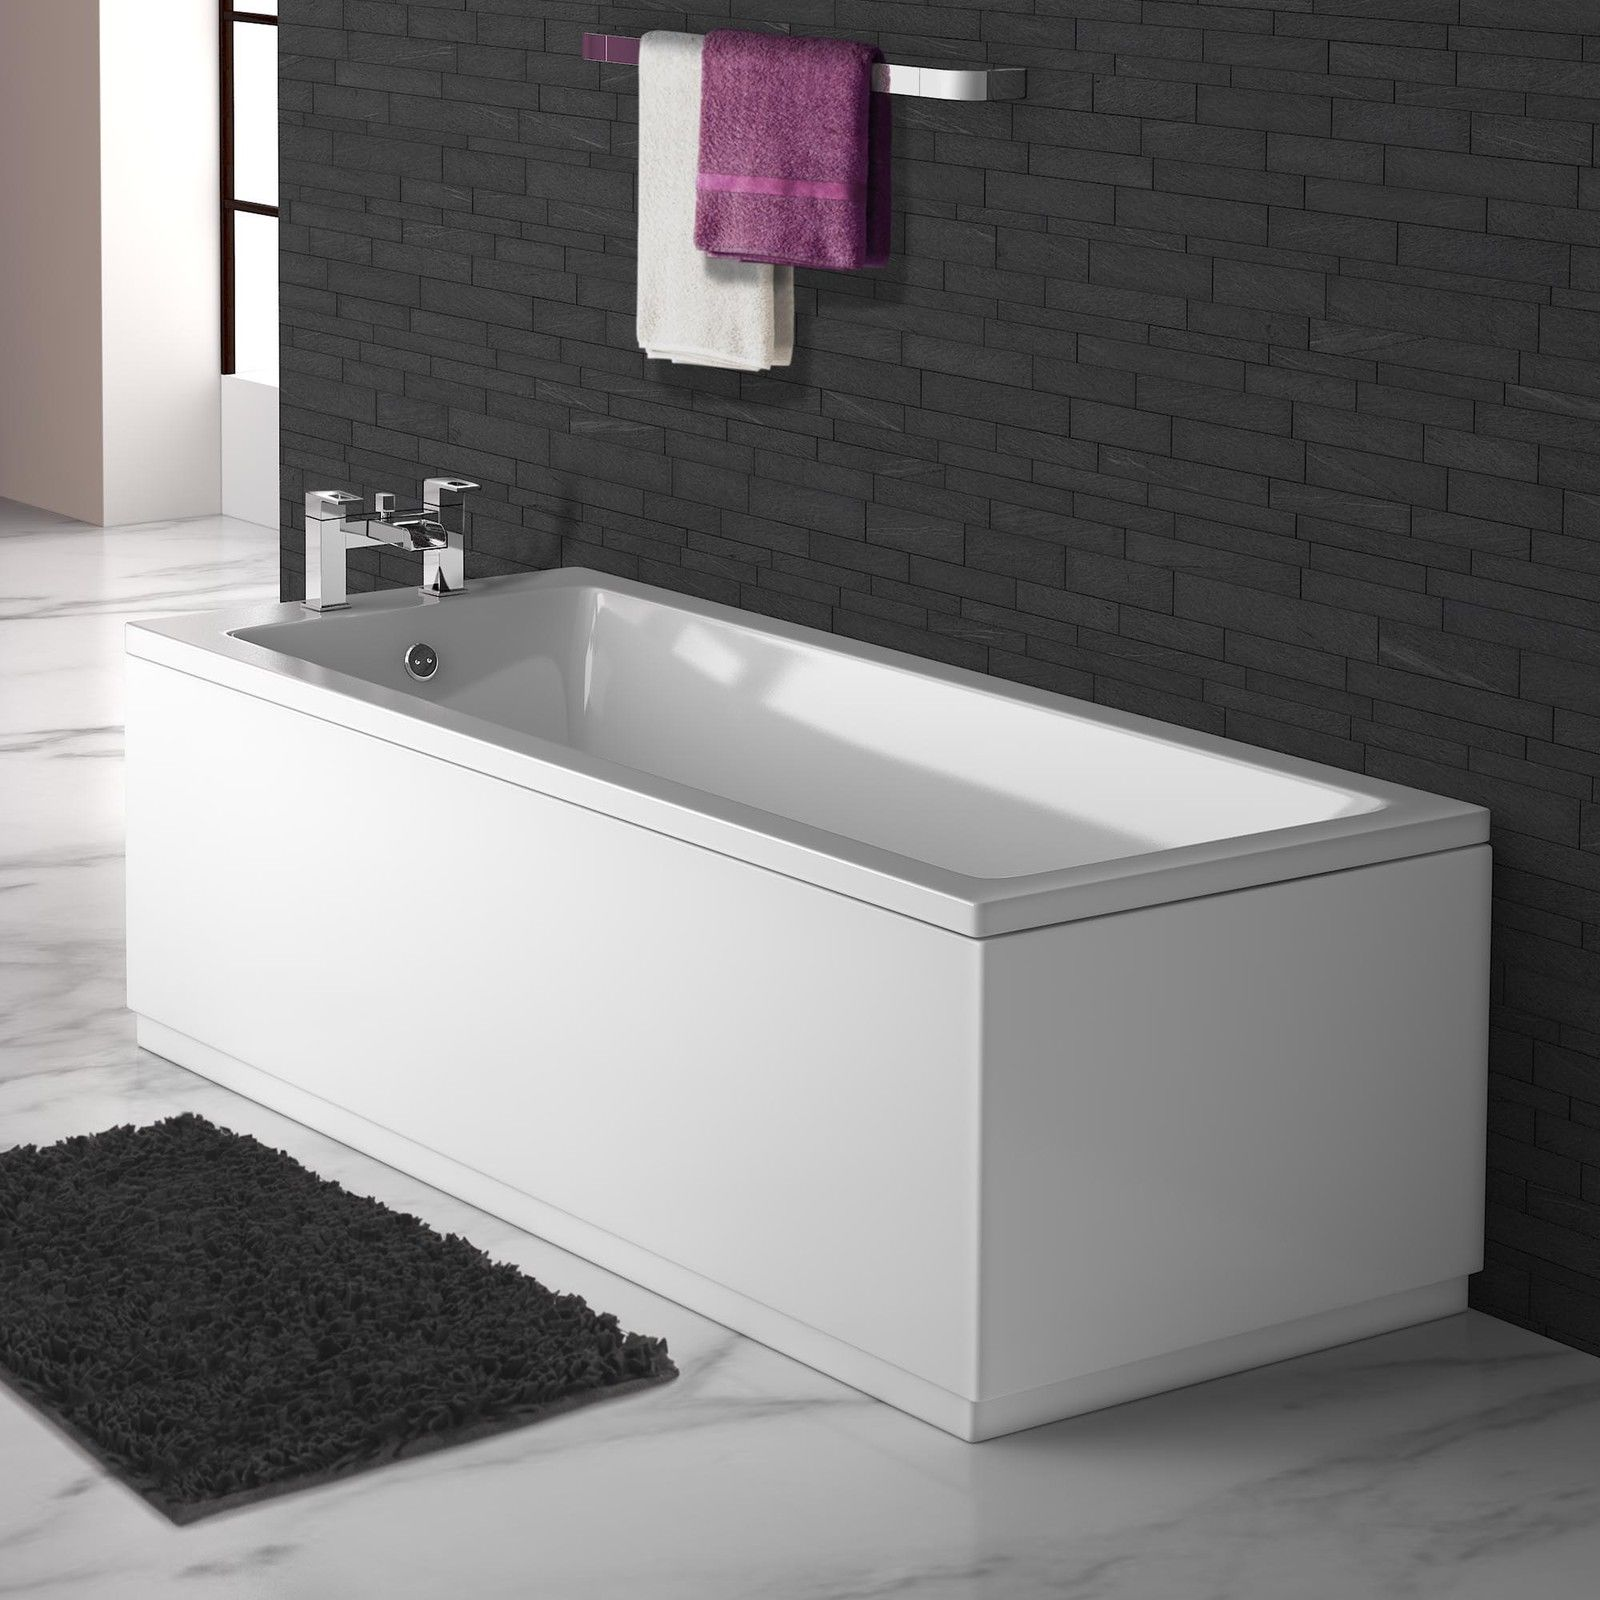 Matt White Extra Height Bath Panels